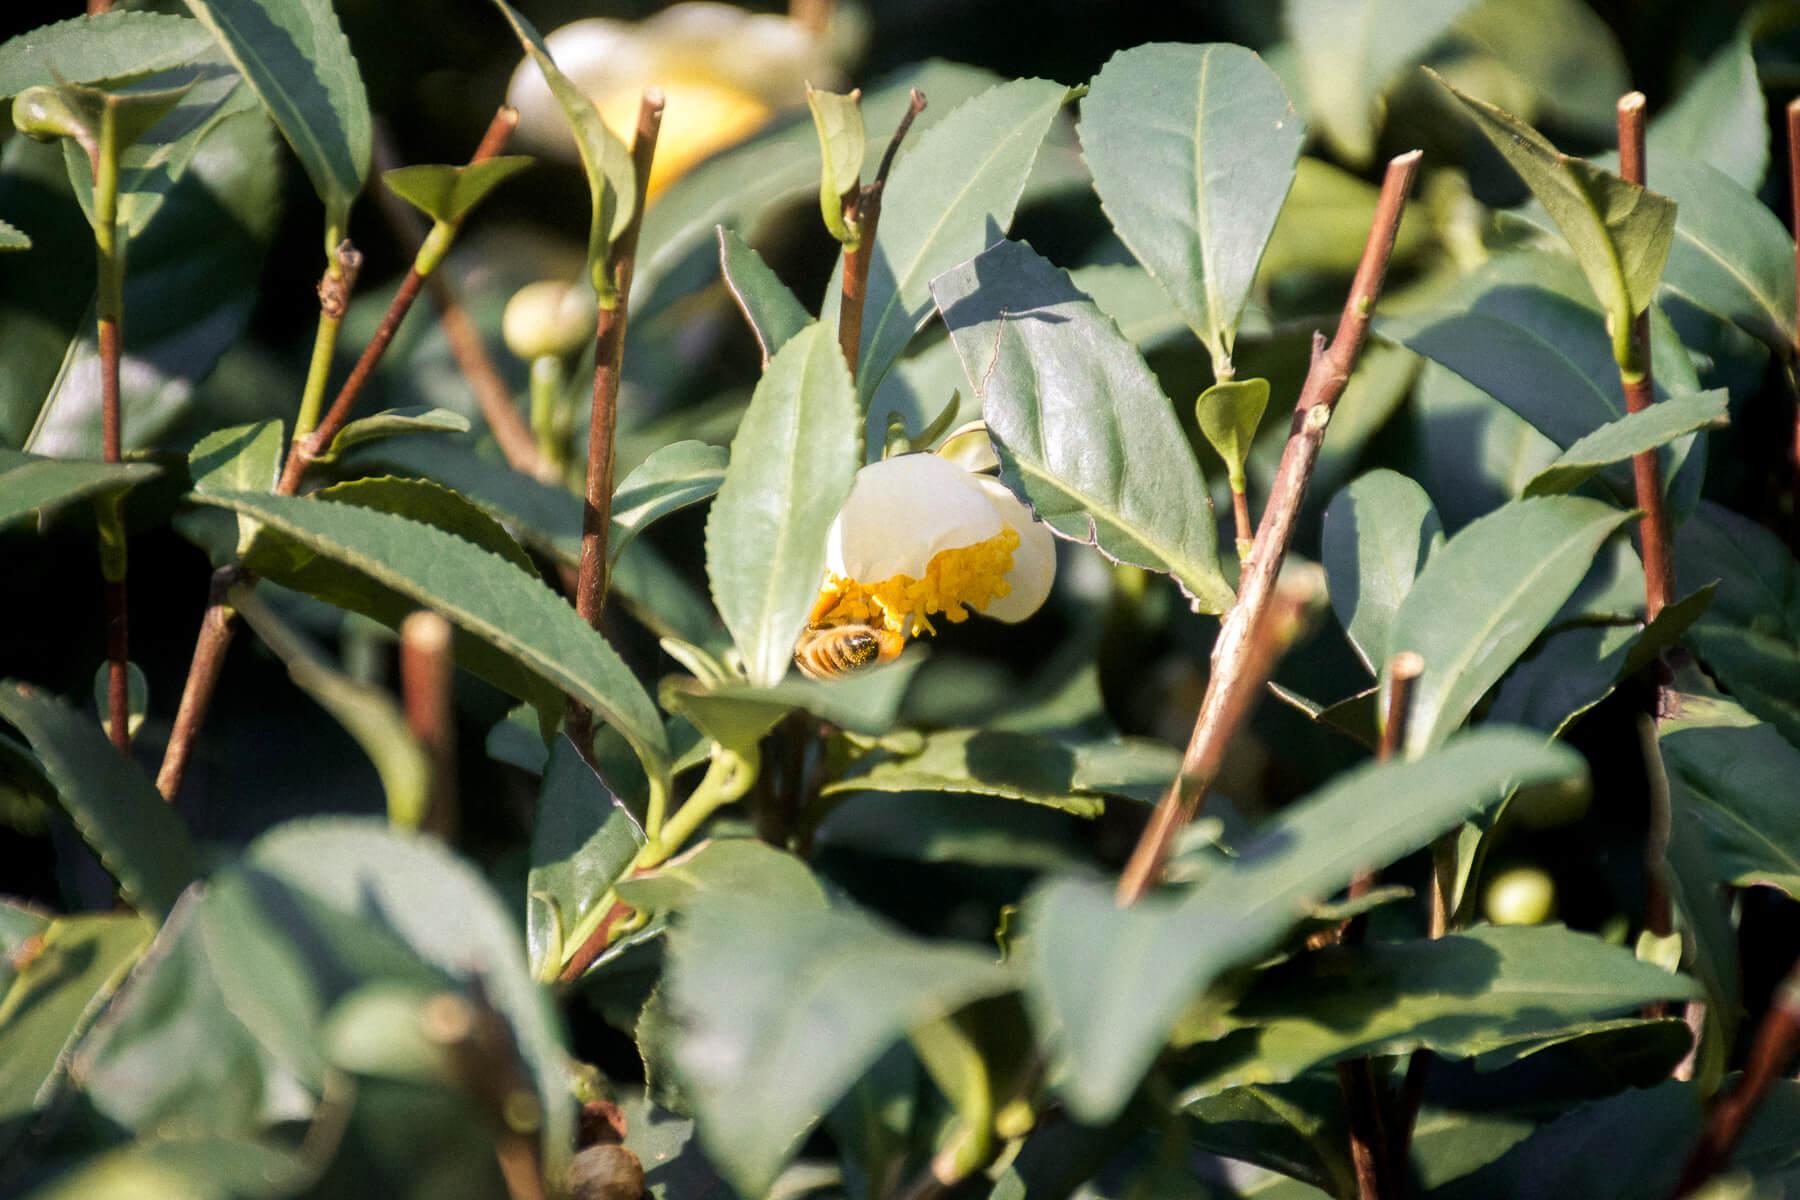 Close up of a bee eating pollen on a tea bush